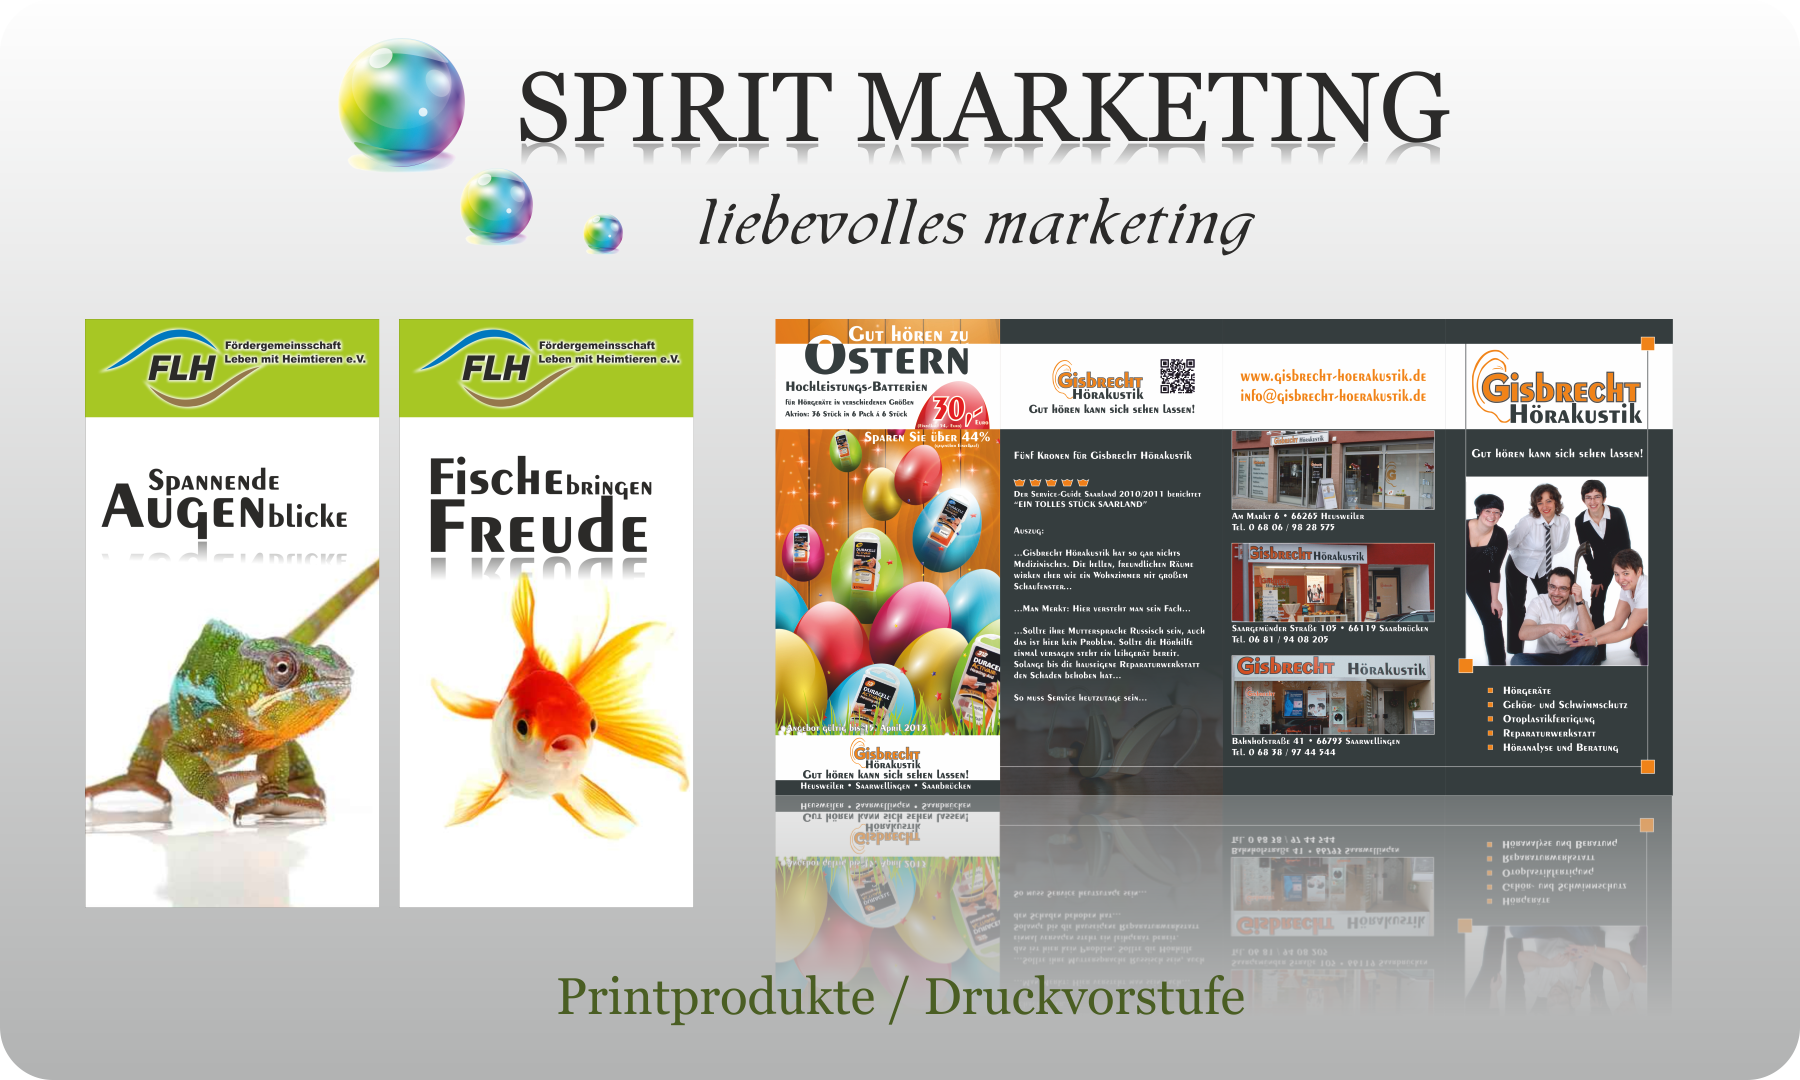 SPIRIT MARKETING - Druckvorstufe